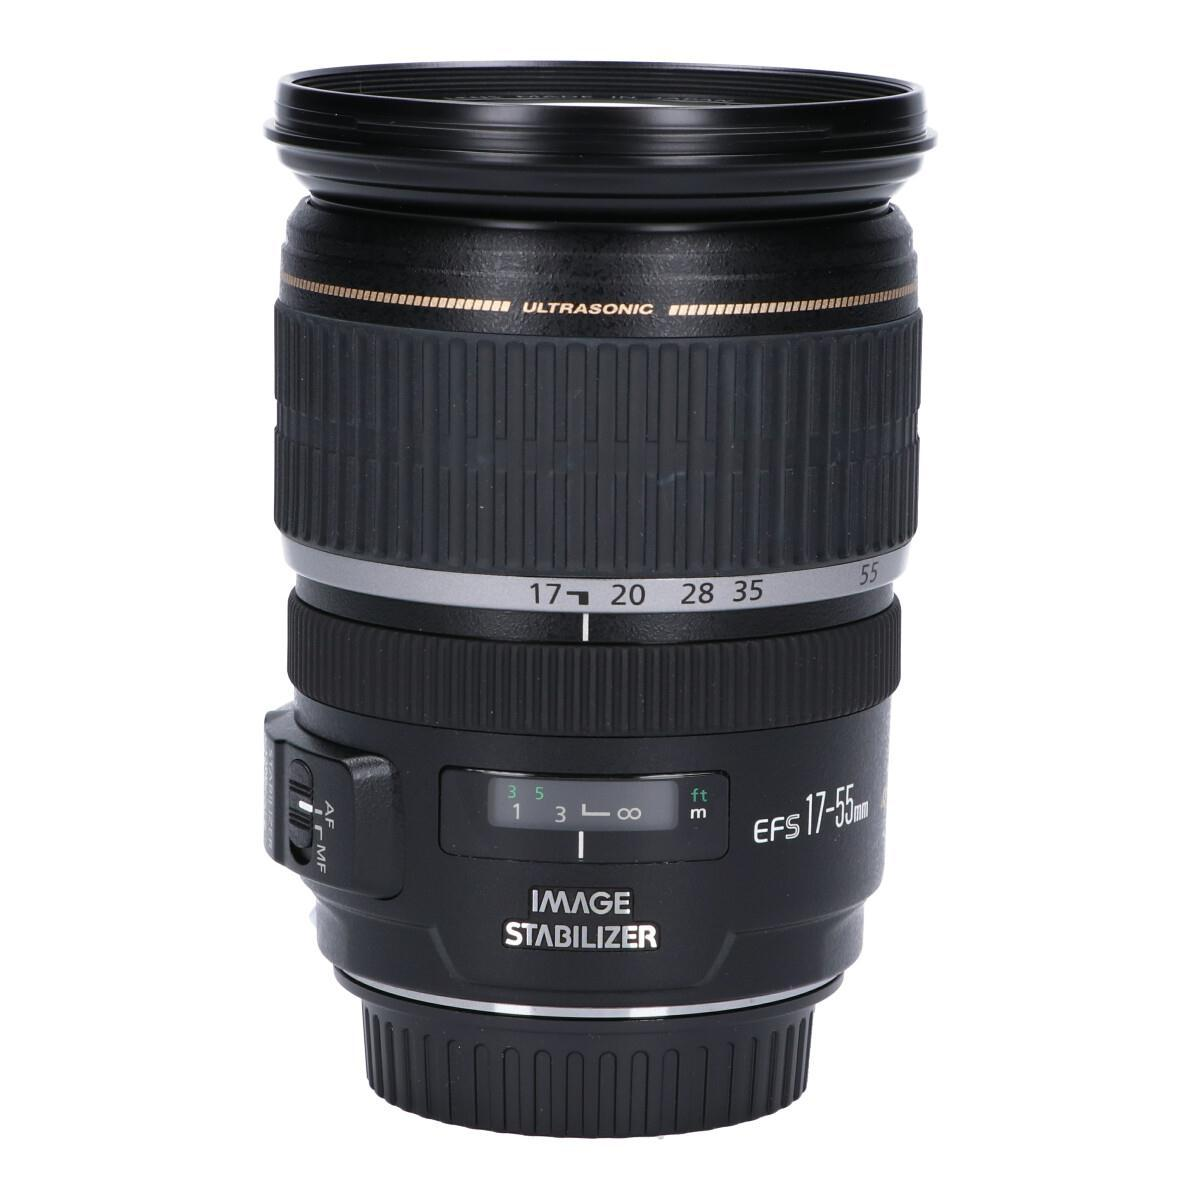 CANON EF-S17-55mm F2.8IS USM【中古】